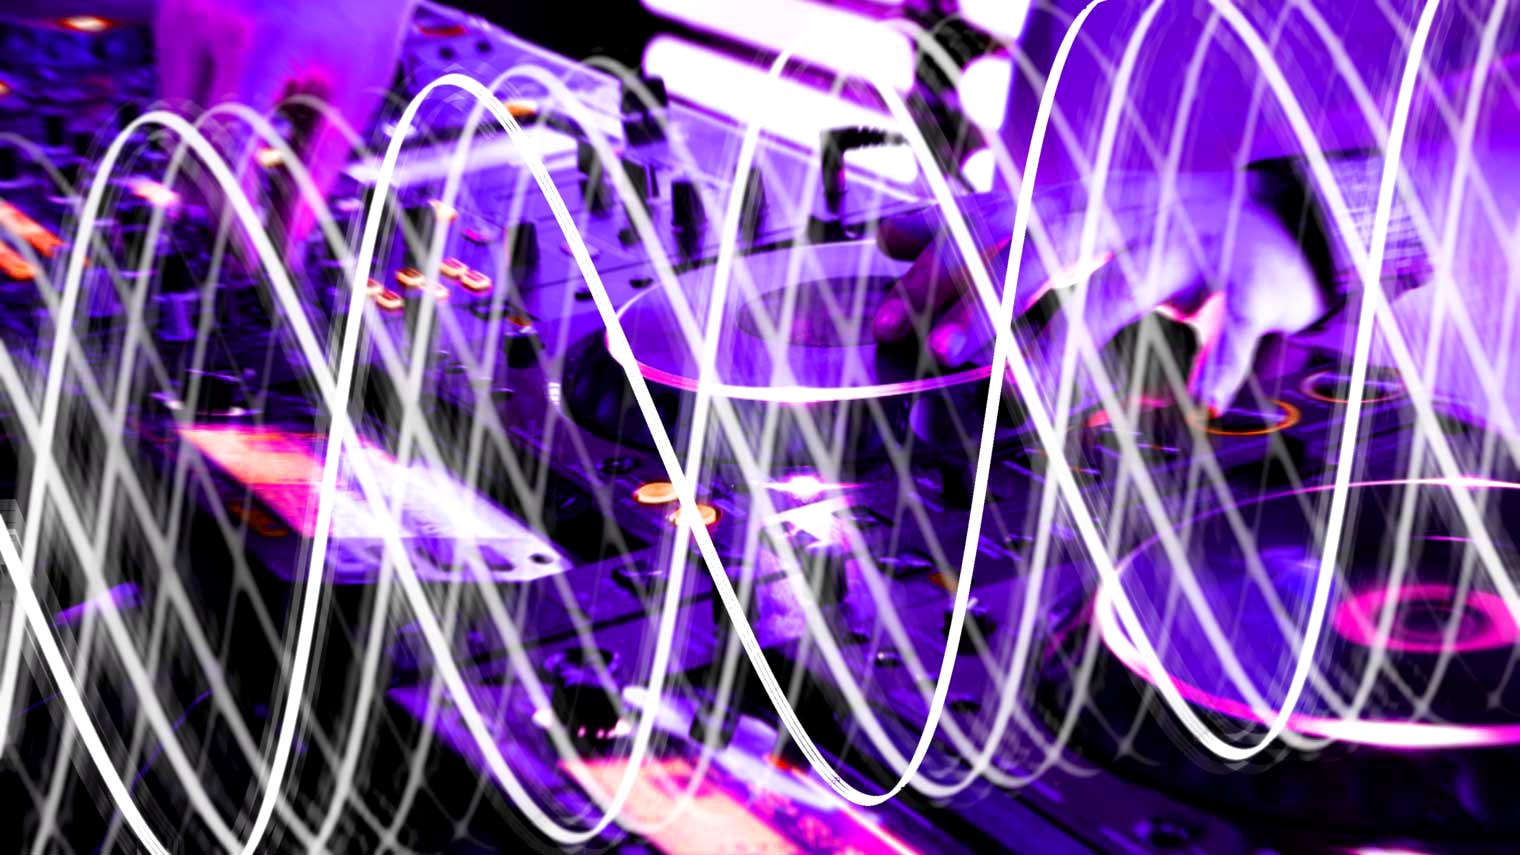 Music Visualizer, VJ Software & Beyond: Magic Music Visuals